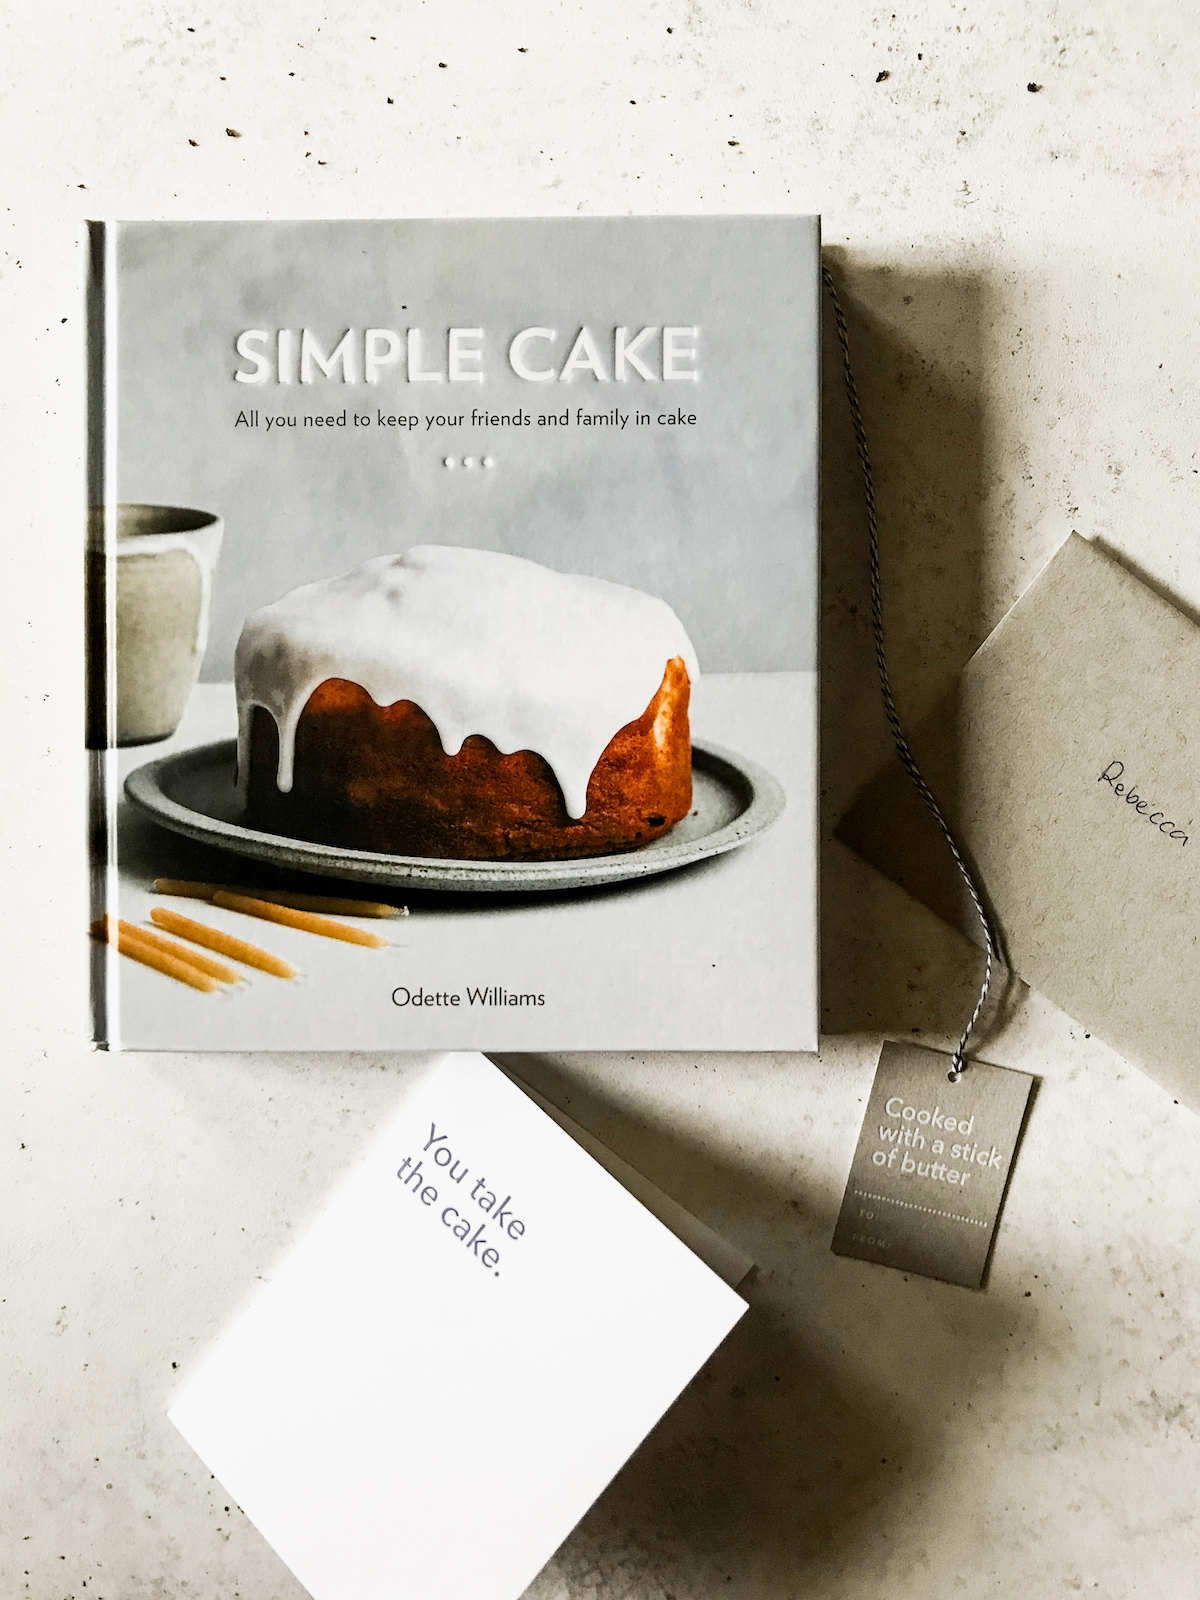 Simple Cake Cookbook by Odette Williams